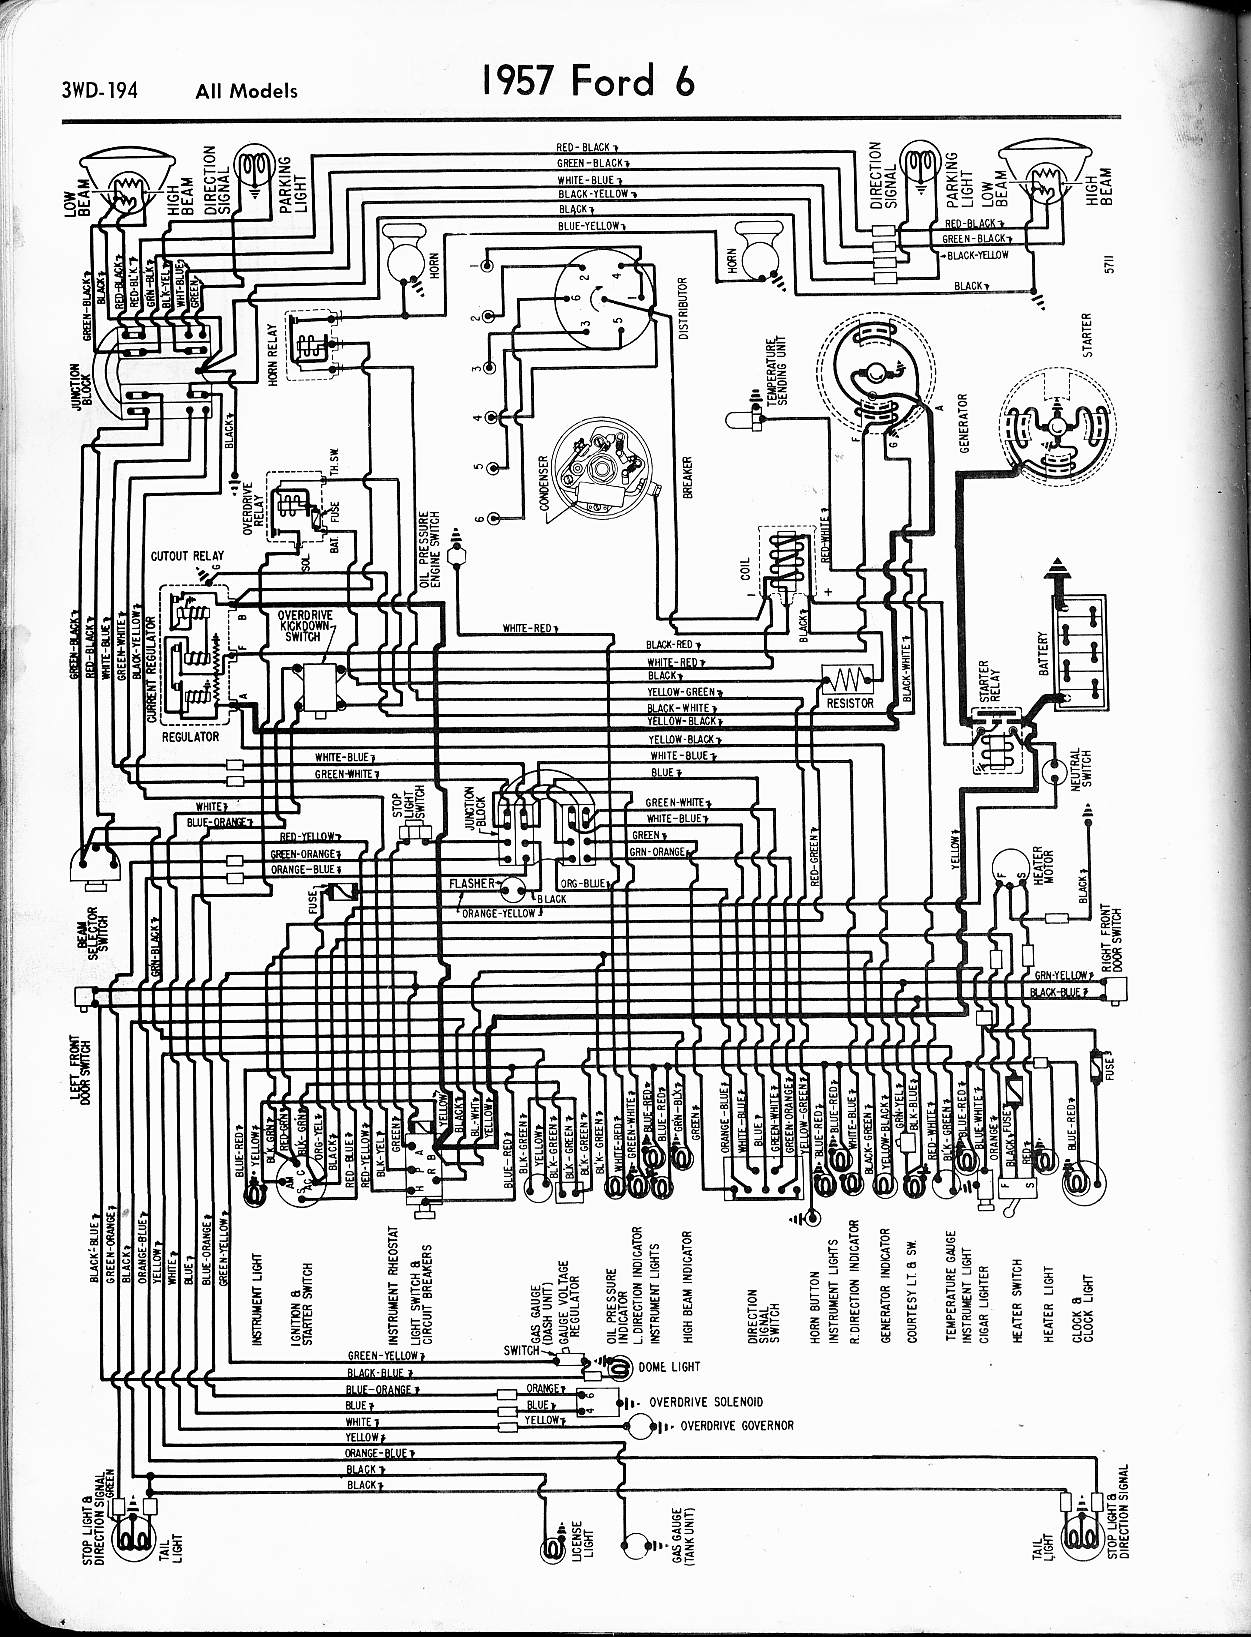 57 65 ford wiring diagrams 1973 ford f100 turn signal wiring diagram 1957 f100 wiring diagram list of